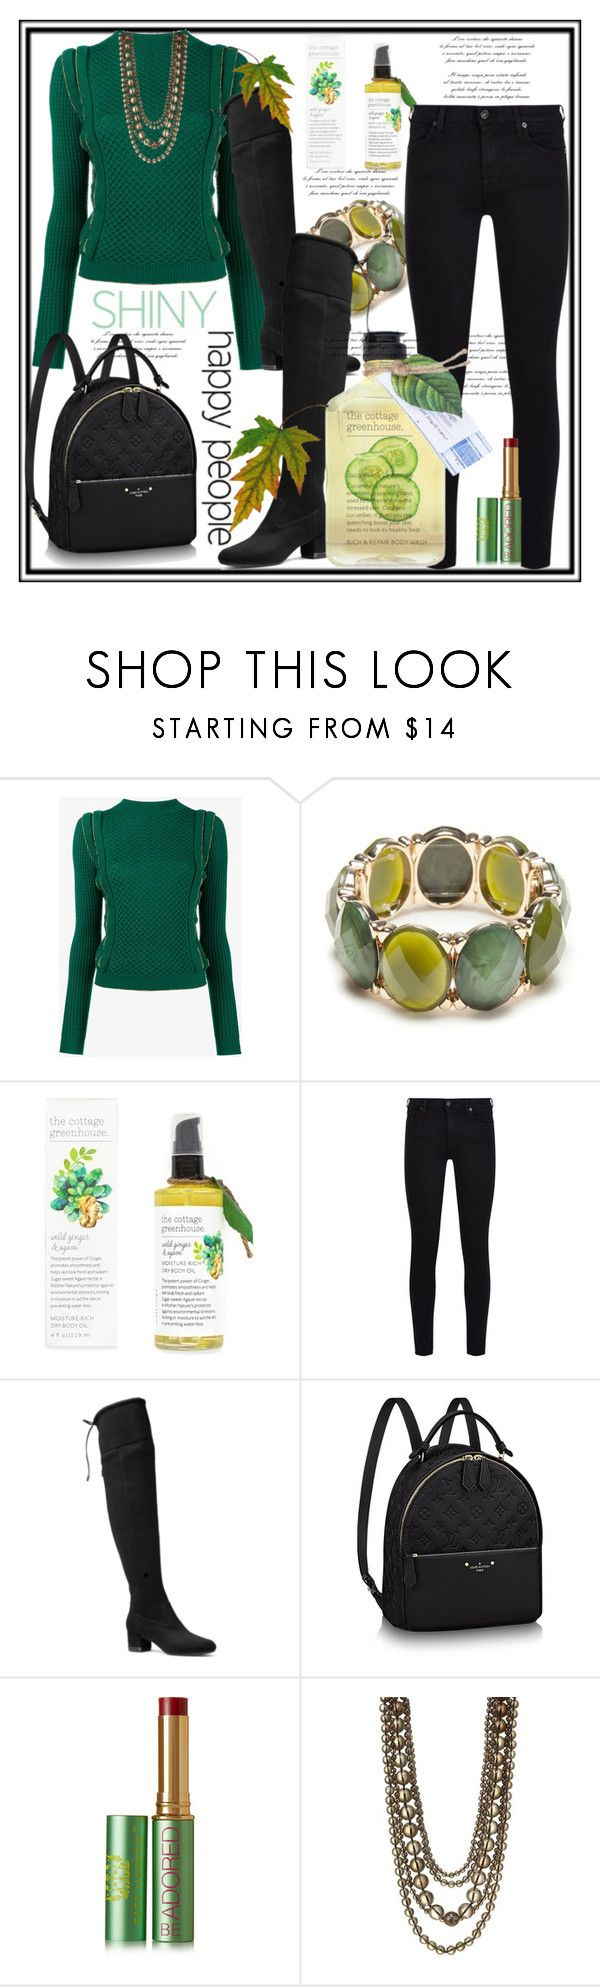 """""""Shiny Happy People"""" by helenaymangual ❤ liked on Polyvore featuring Philosophy di Lorenzo Serafini, New Directions, 7 For All Mankind, MICHAEL Michael Kors, Tata Harper and Kenneth Jay Lane"""